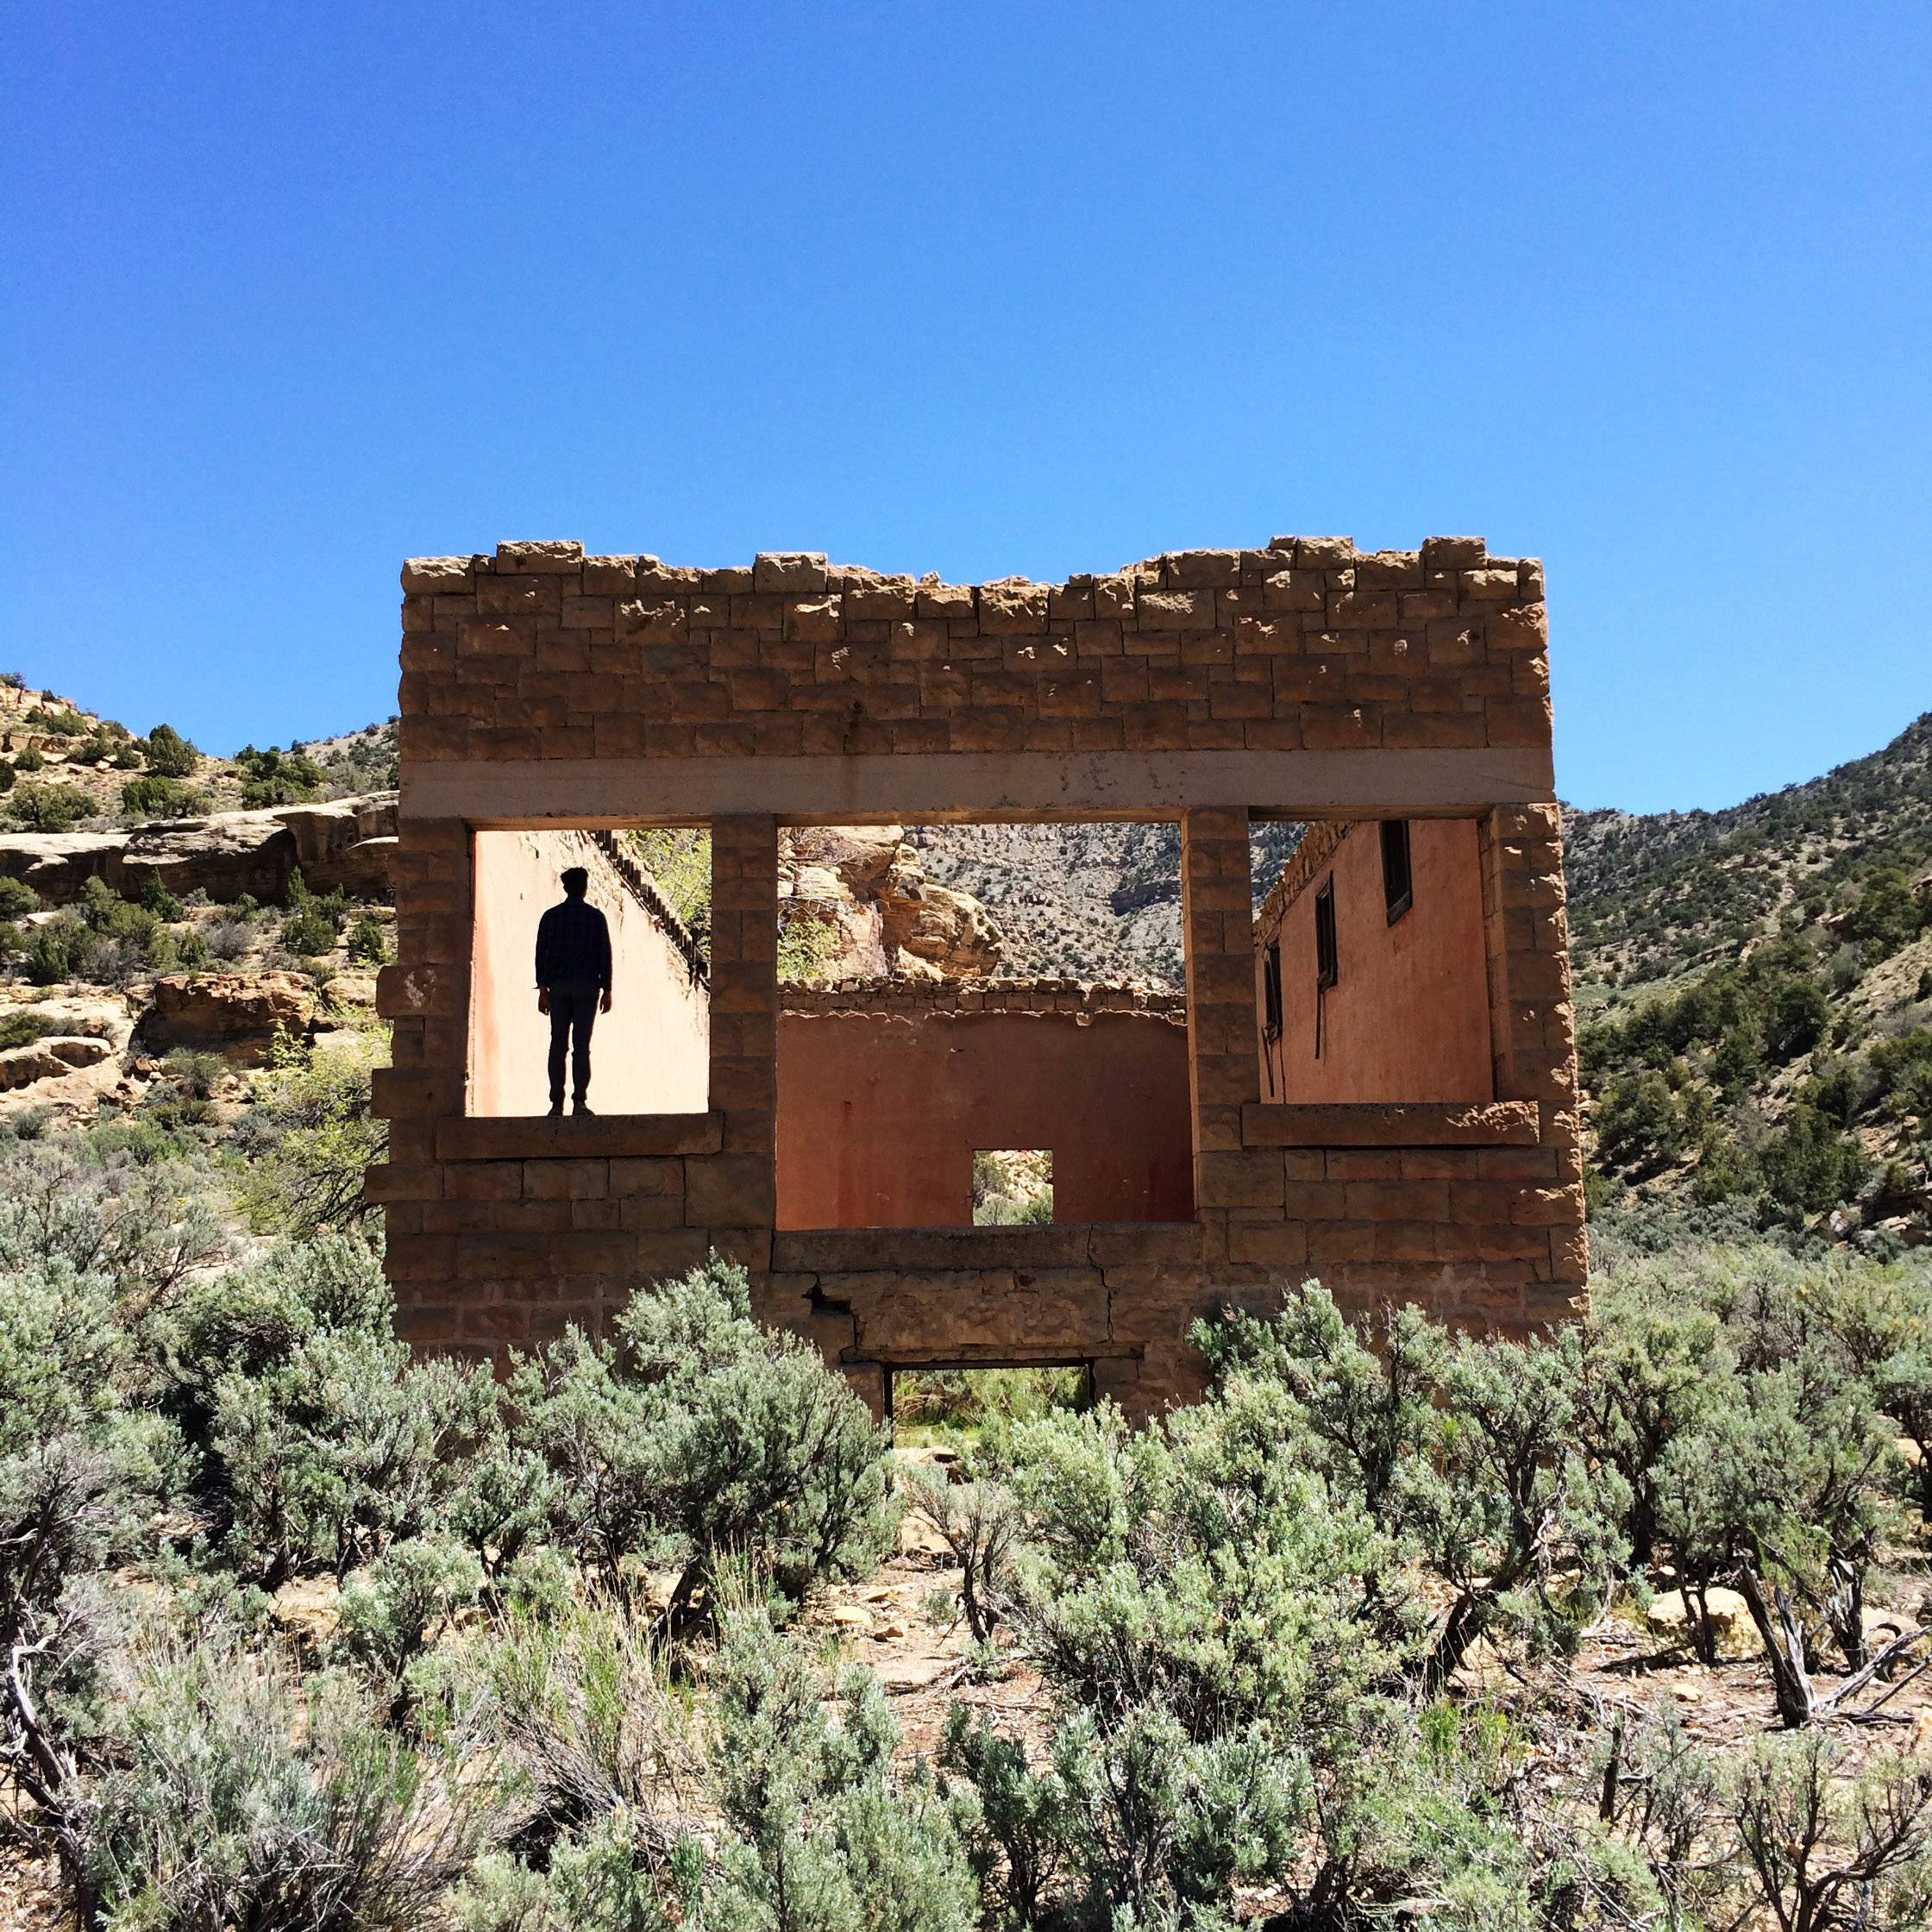 A figure stands in the window of an abandoned structure in Sego, Utah earlier this month, an abandoned mining town an hour north of Moab. Petroglyphs can be found on the canyons walls surrounding the old town.